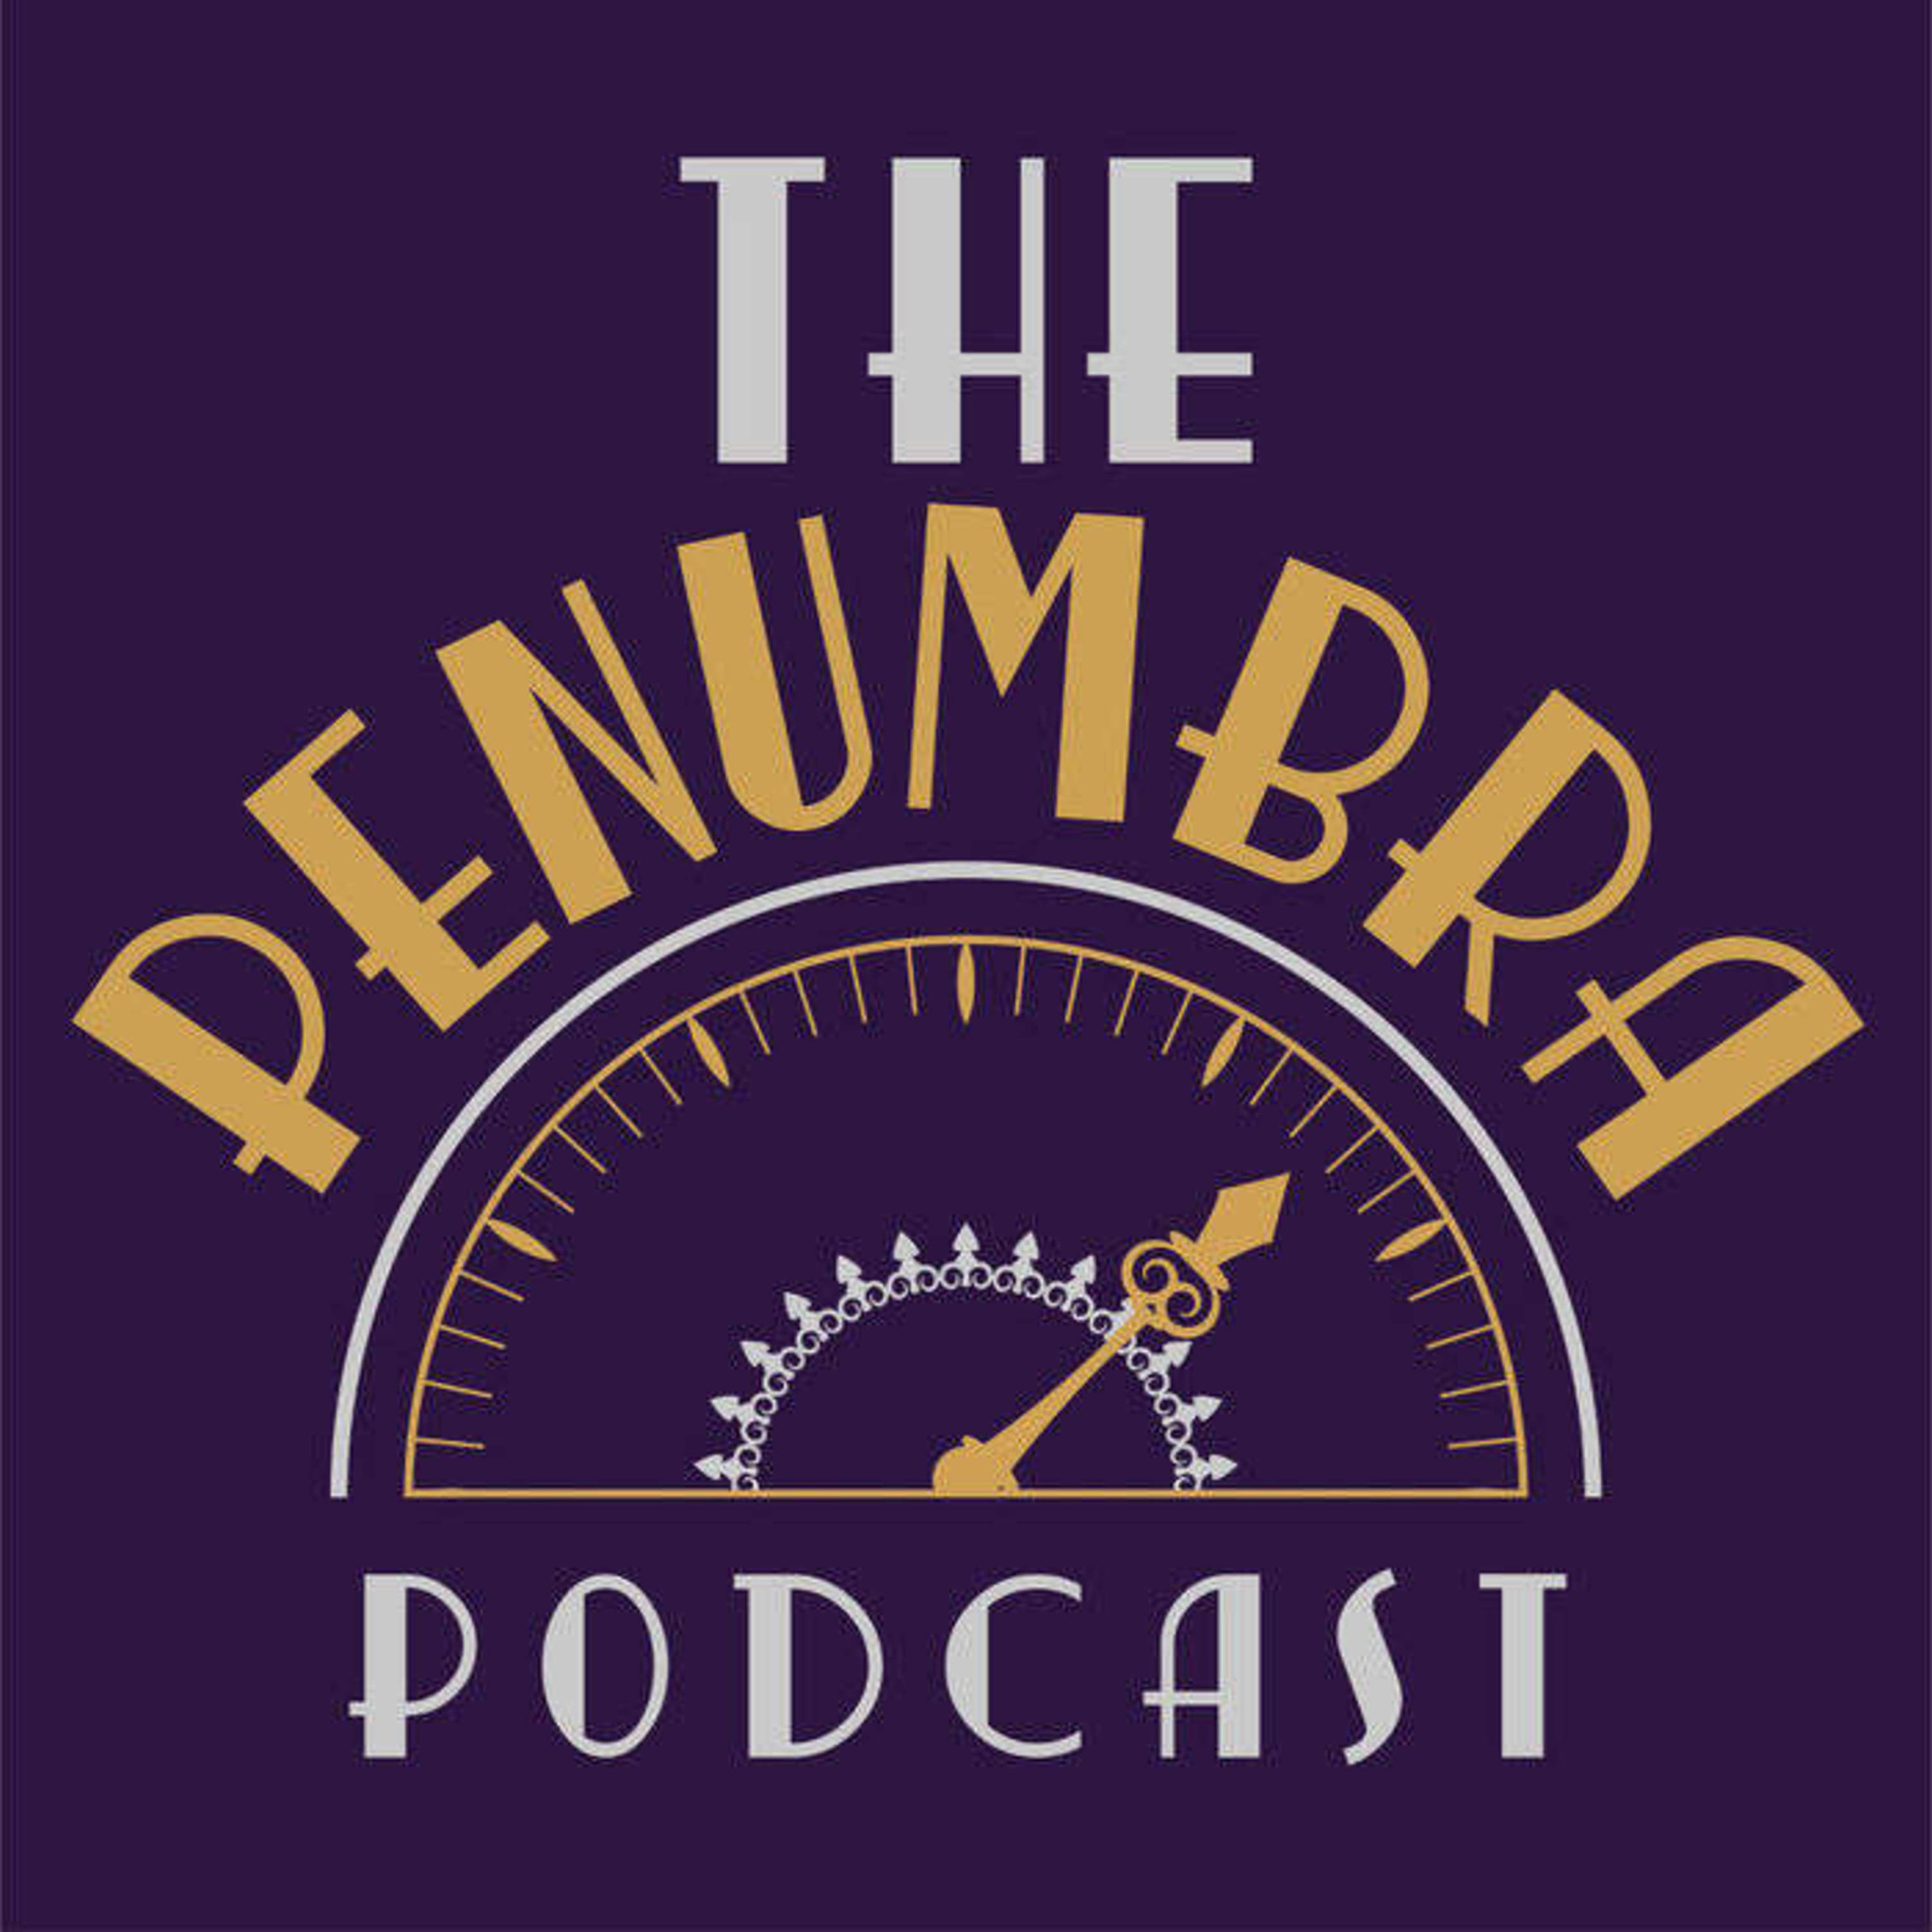 The Penumbra Podcast